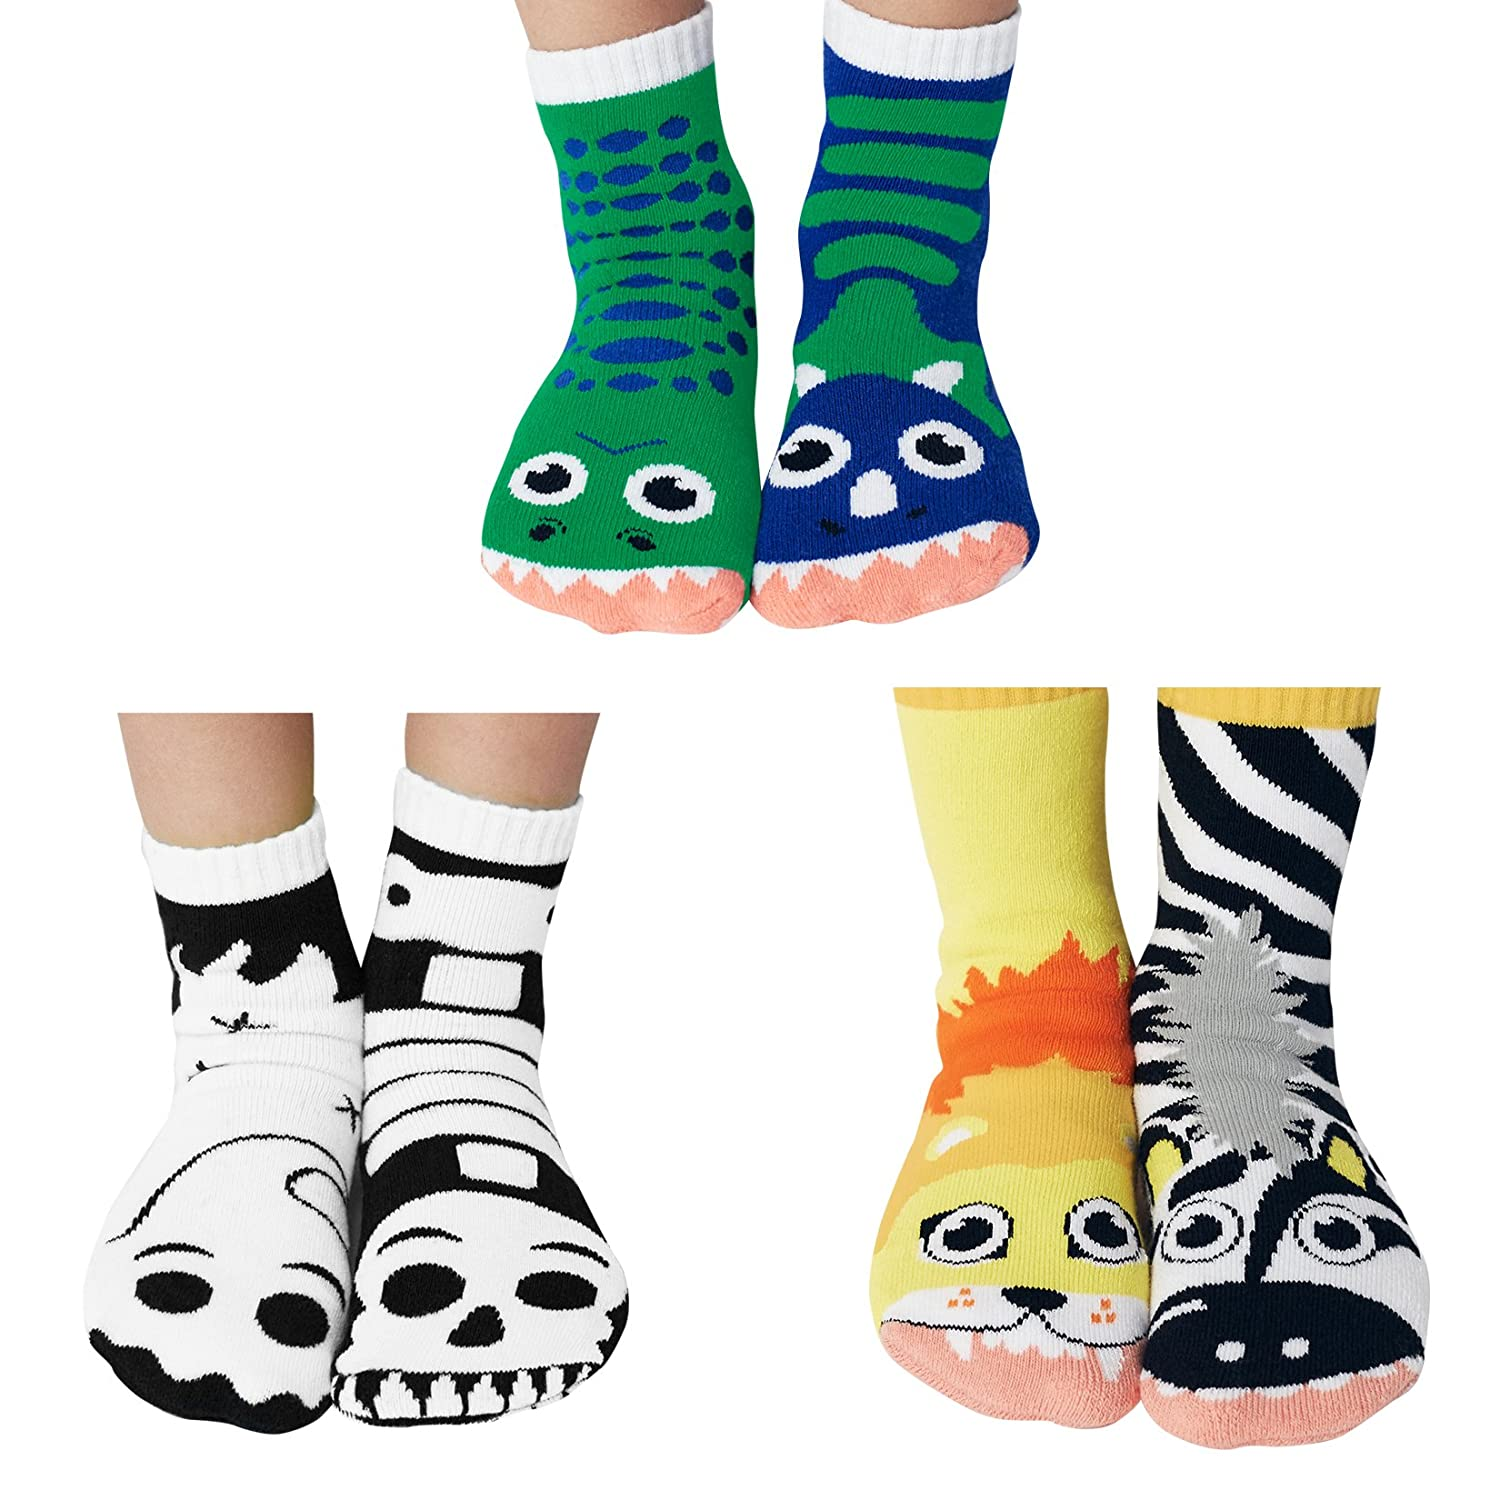 Werewolf & Zombie, Snake and Mouse, Robots Mismatched Kids Socks Pack, Kids Ages 4-8 PS-16a